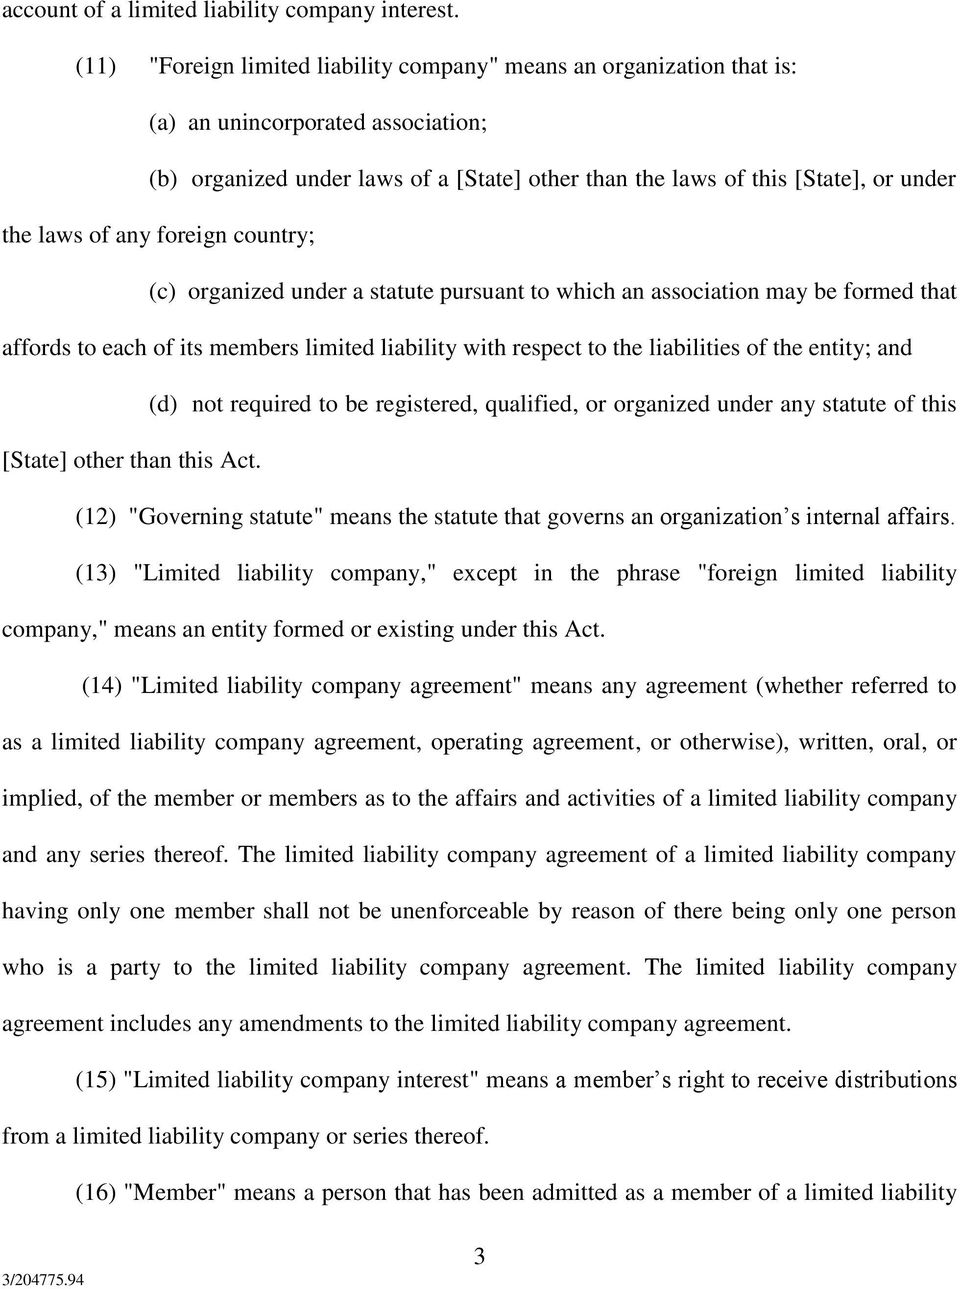 revised prototype limited liability company act - pdf